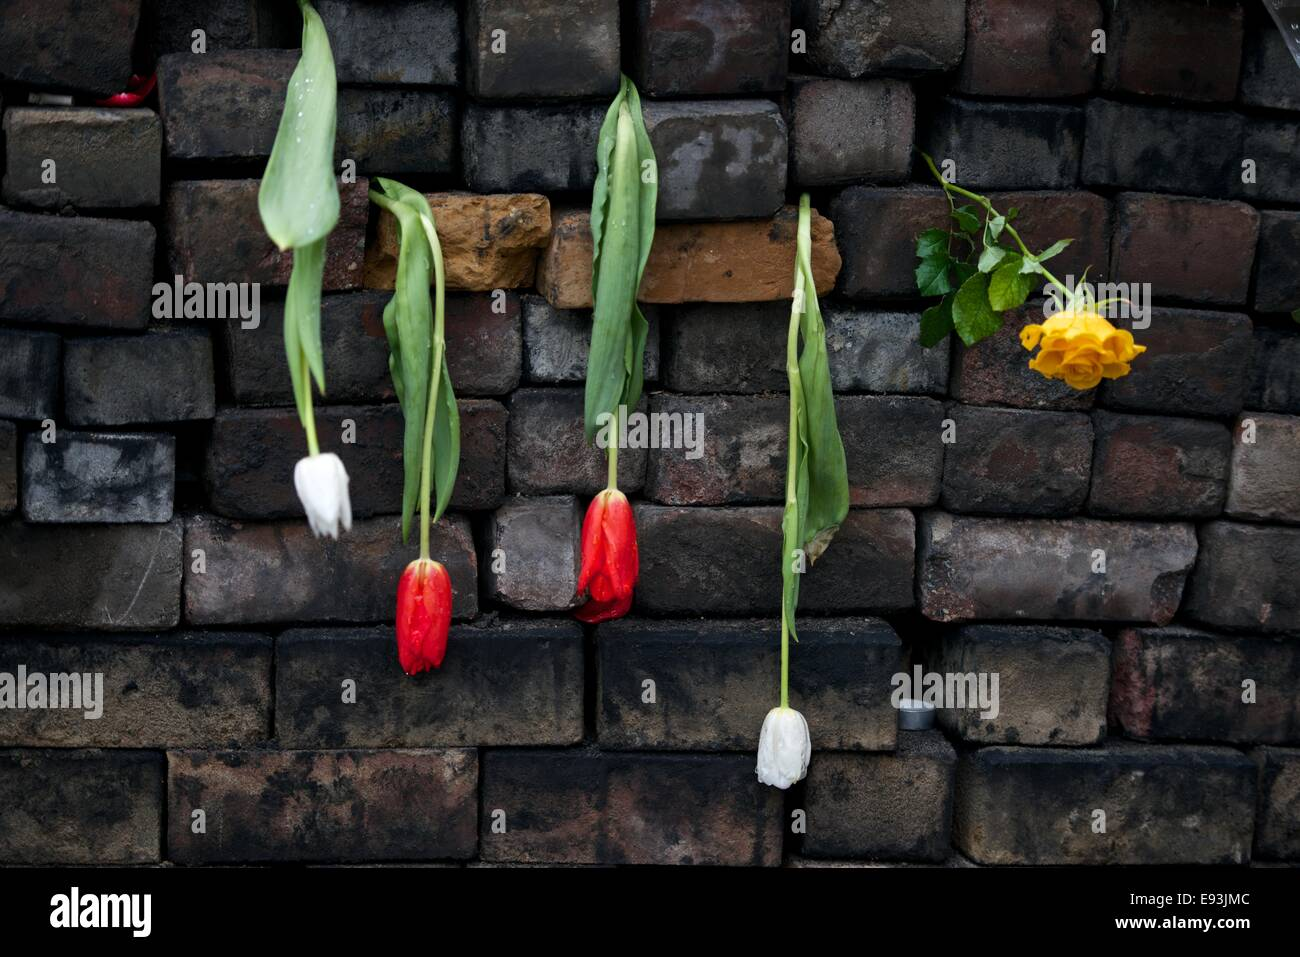 Tulips hang from a soot covered barricade made from paving setts at the Maidan in Kiev - Stock Image